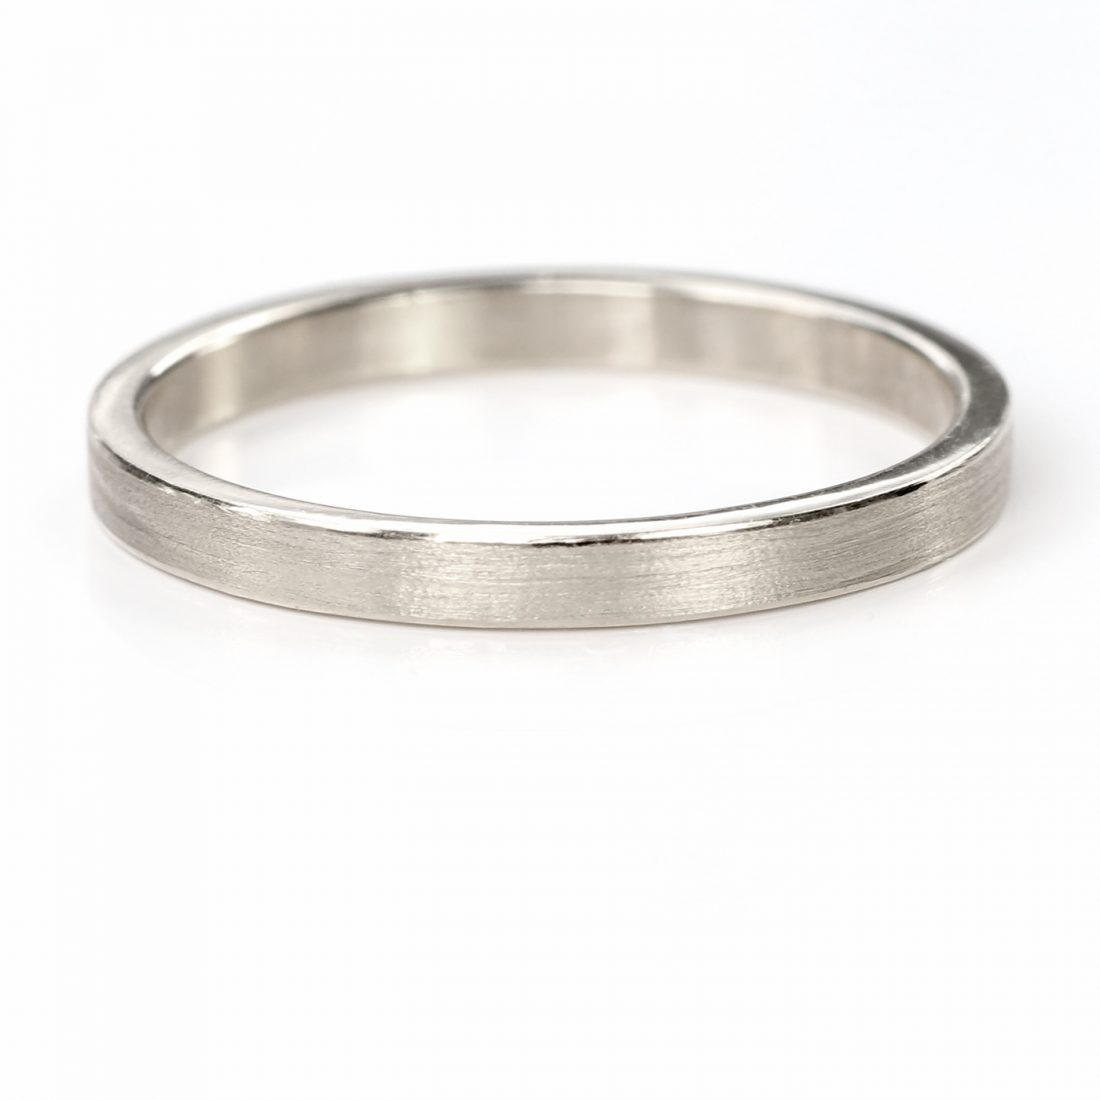 2mm x 1.2mm flat wedding wedding ring white gold